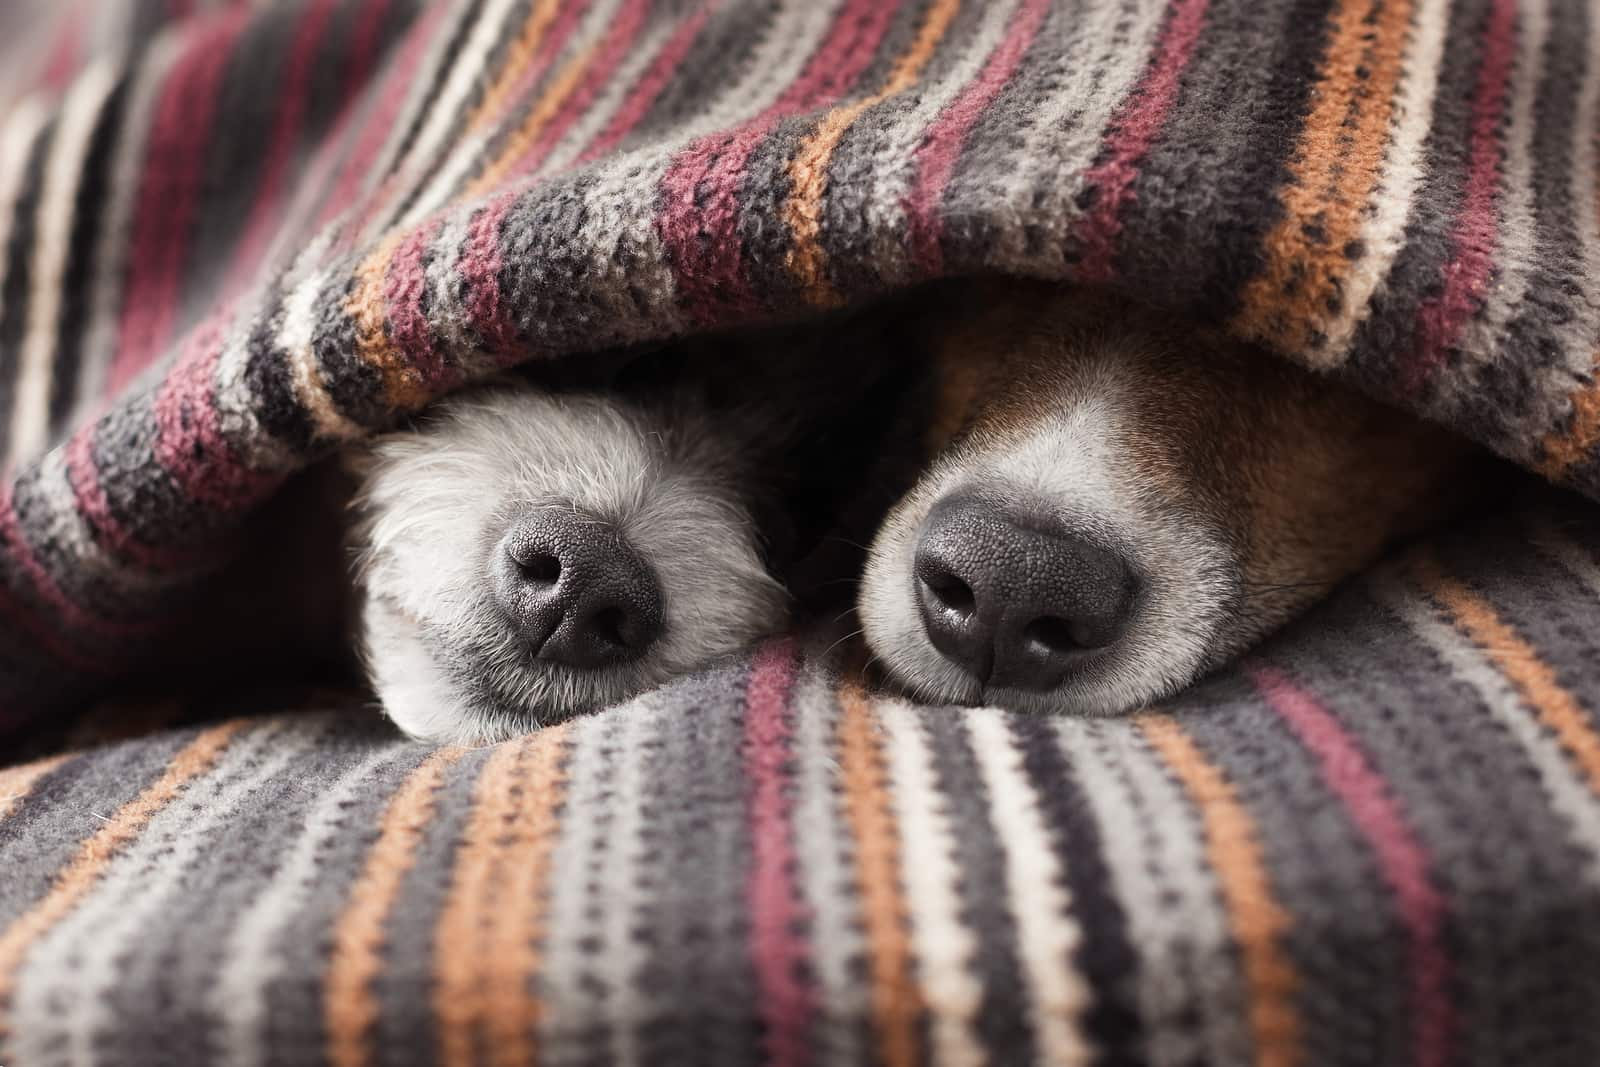 Two dog noses poking out from under a blanket